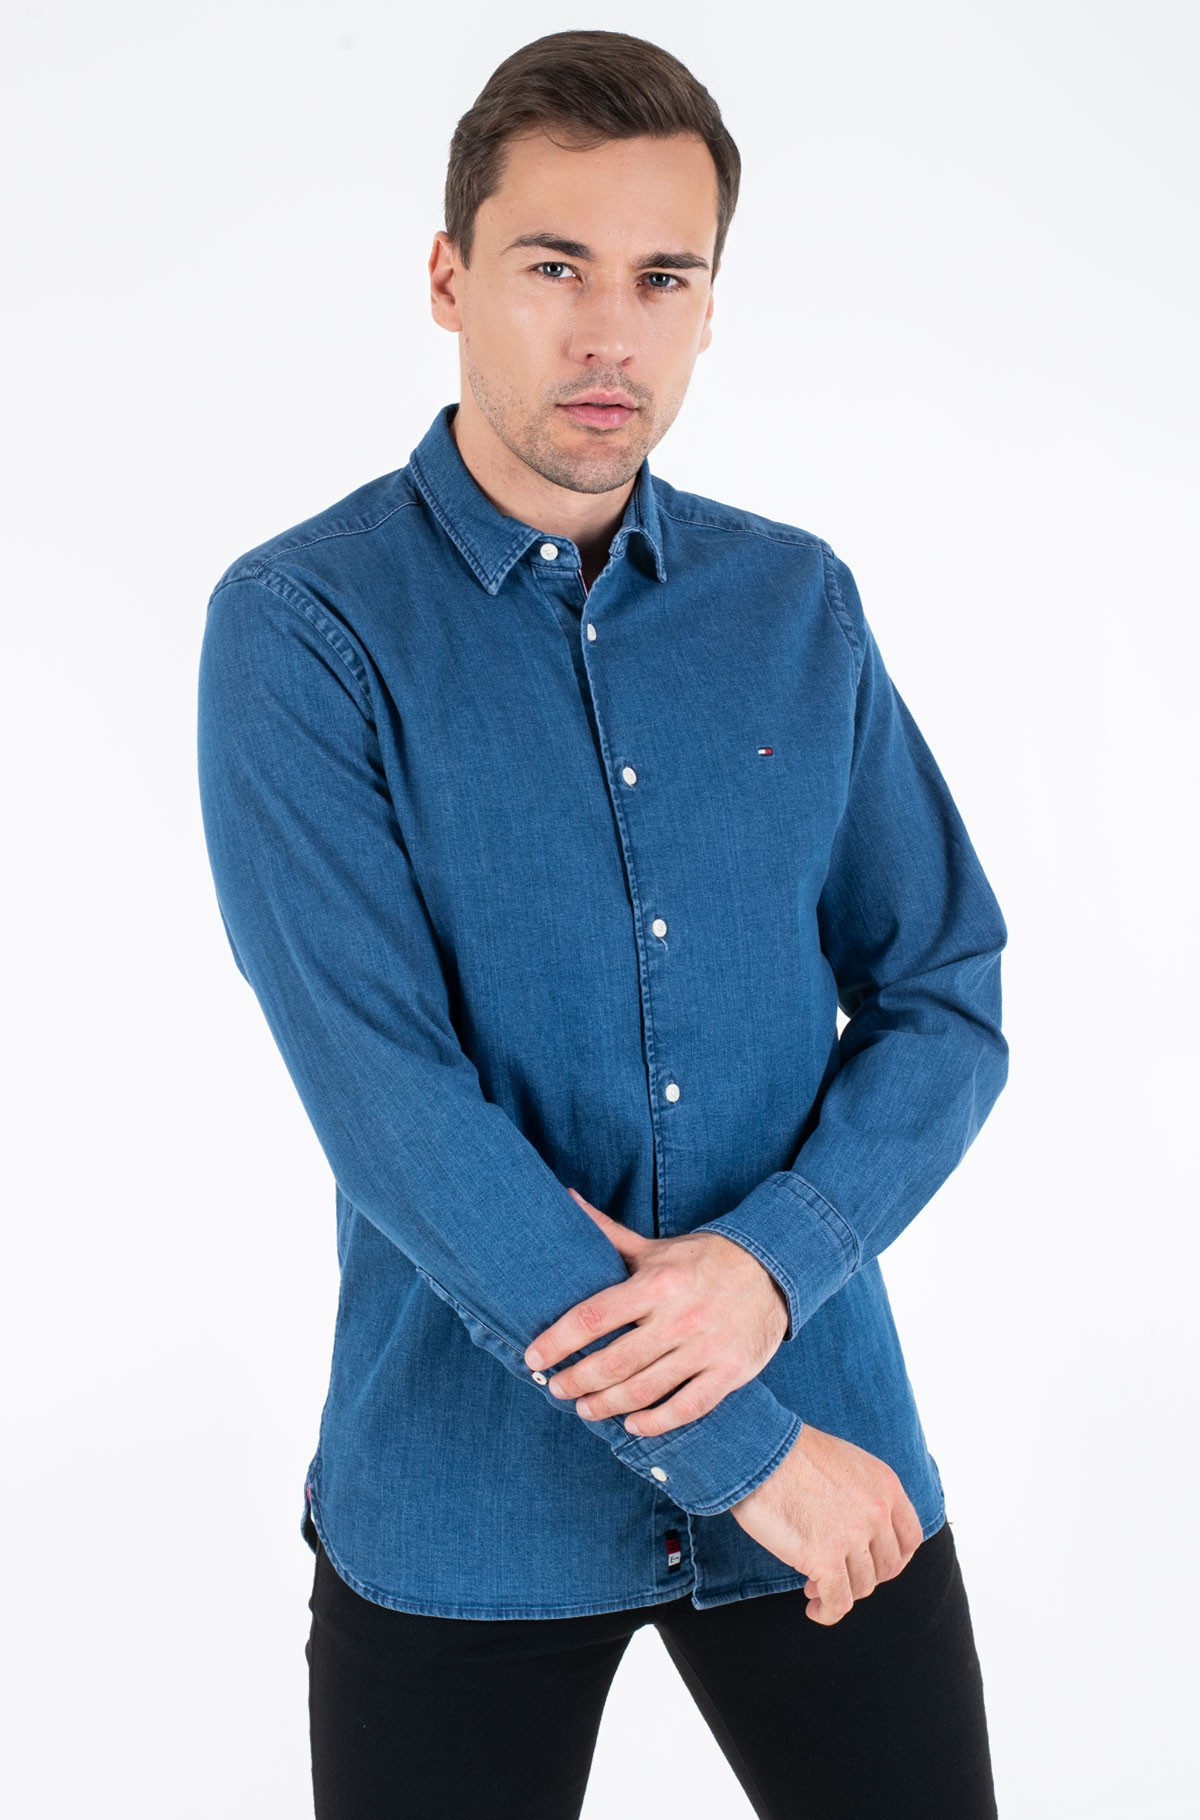 Teksasärk FLEX CHAMBRAY SHIRT	-full-1